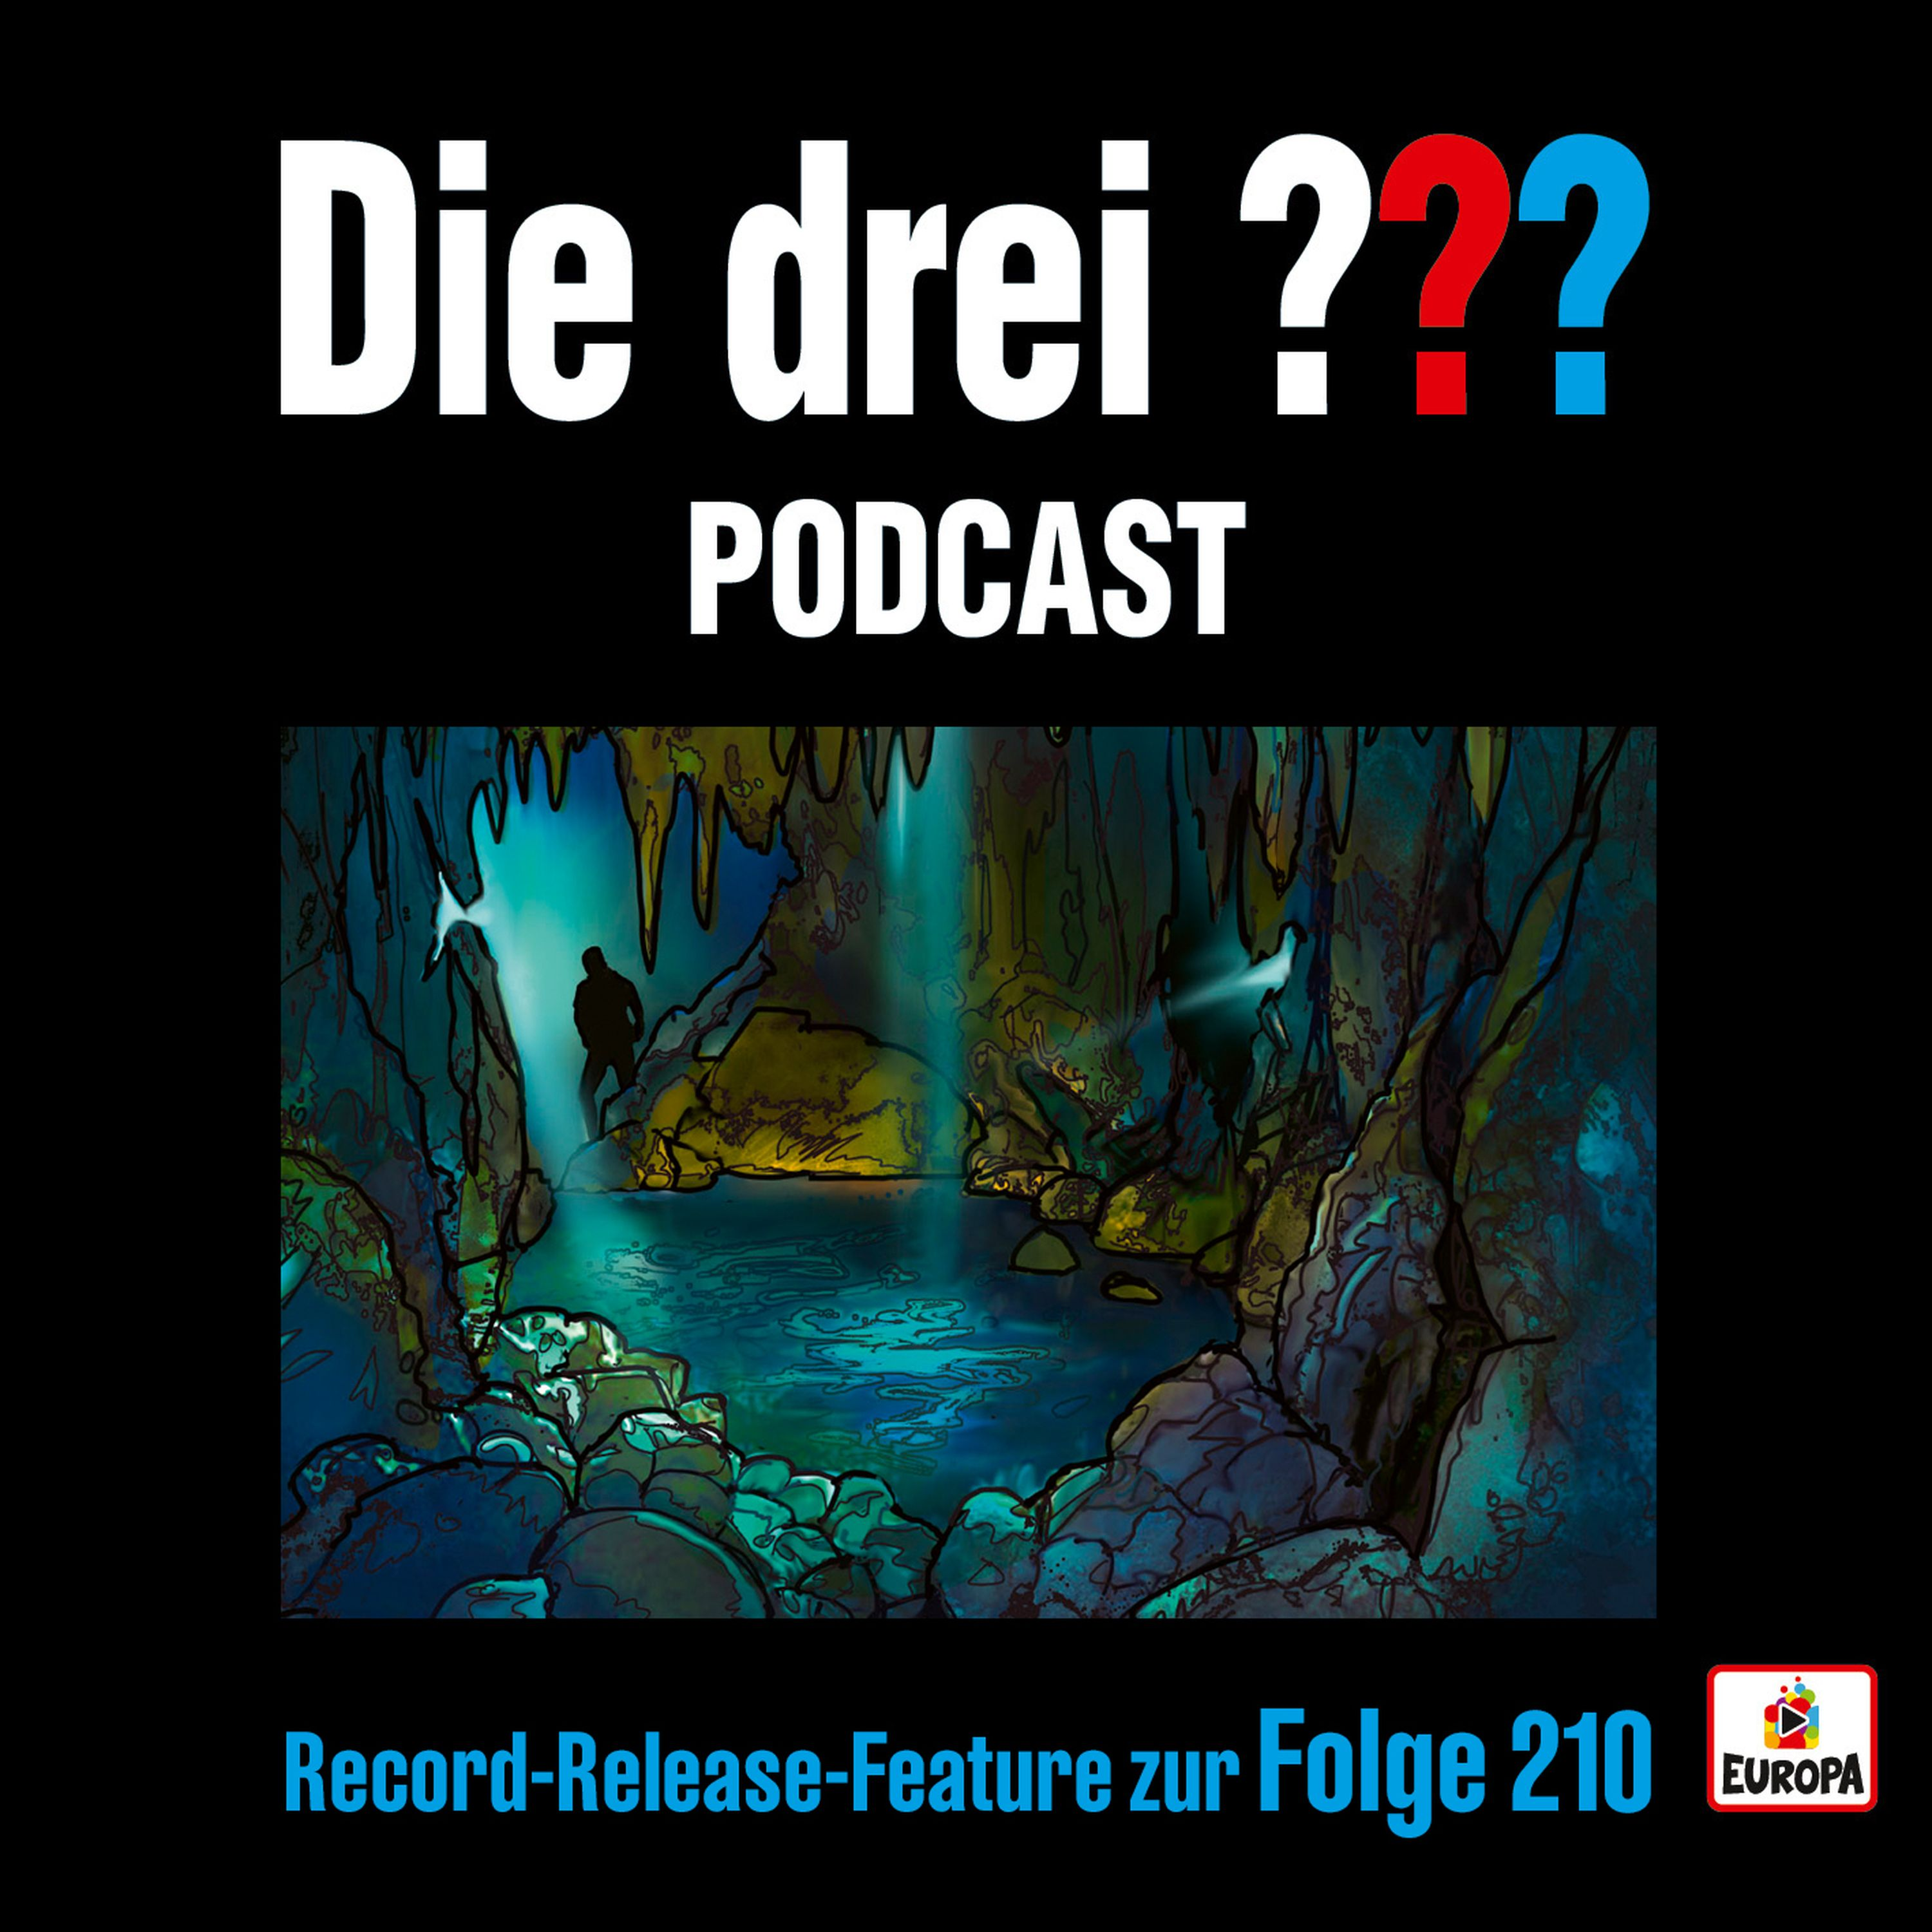 Record-Release-Feature zur Folge 210